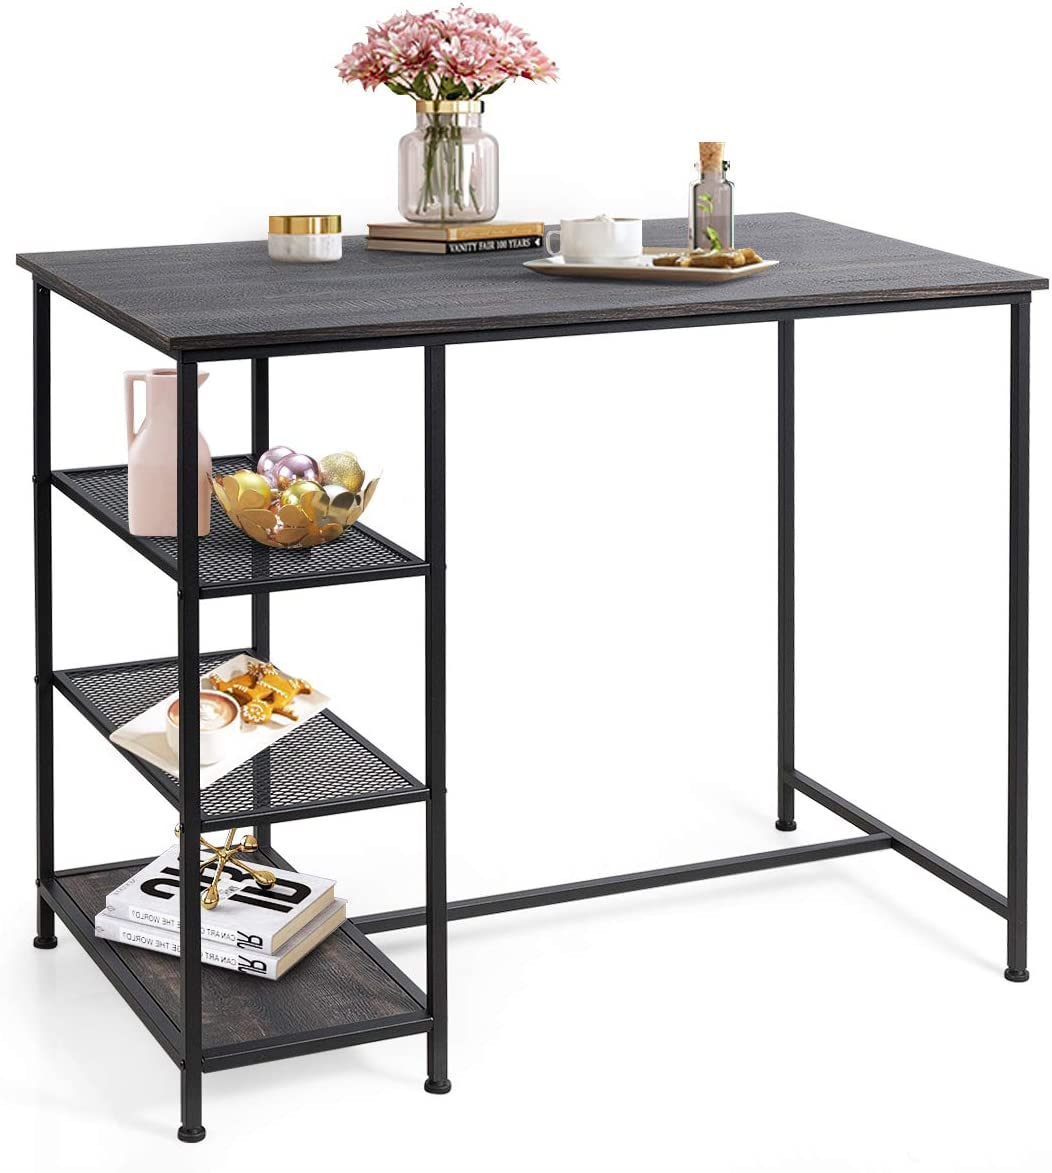 COSTWAY Counter Height Pub Table, Modern Bar Table with 8 Open Storage  Shelves, Dining Table with Metal Frame for Small Space, Dining Room, Living